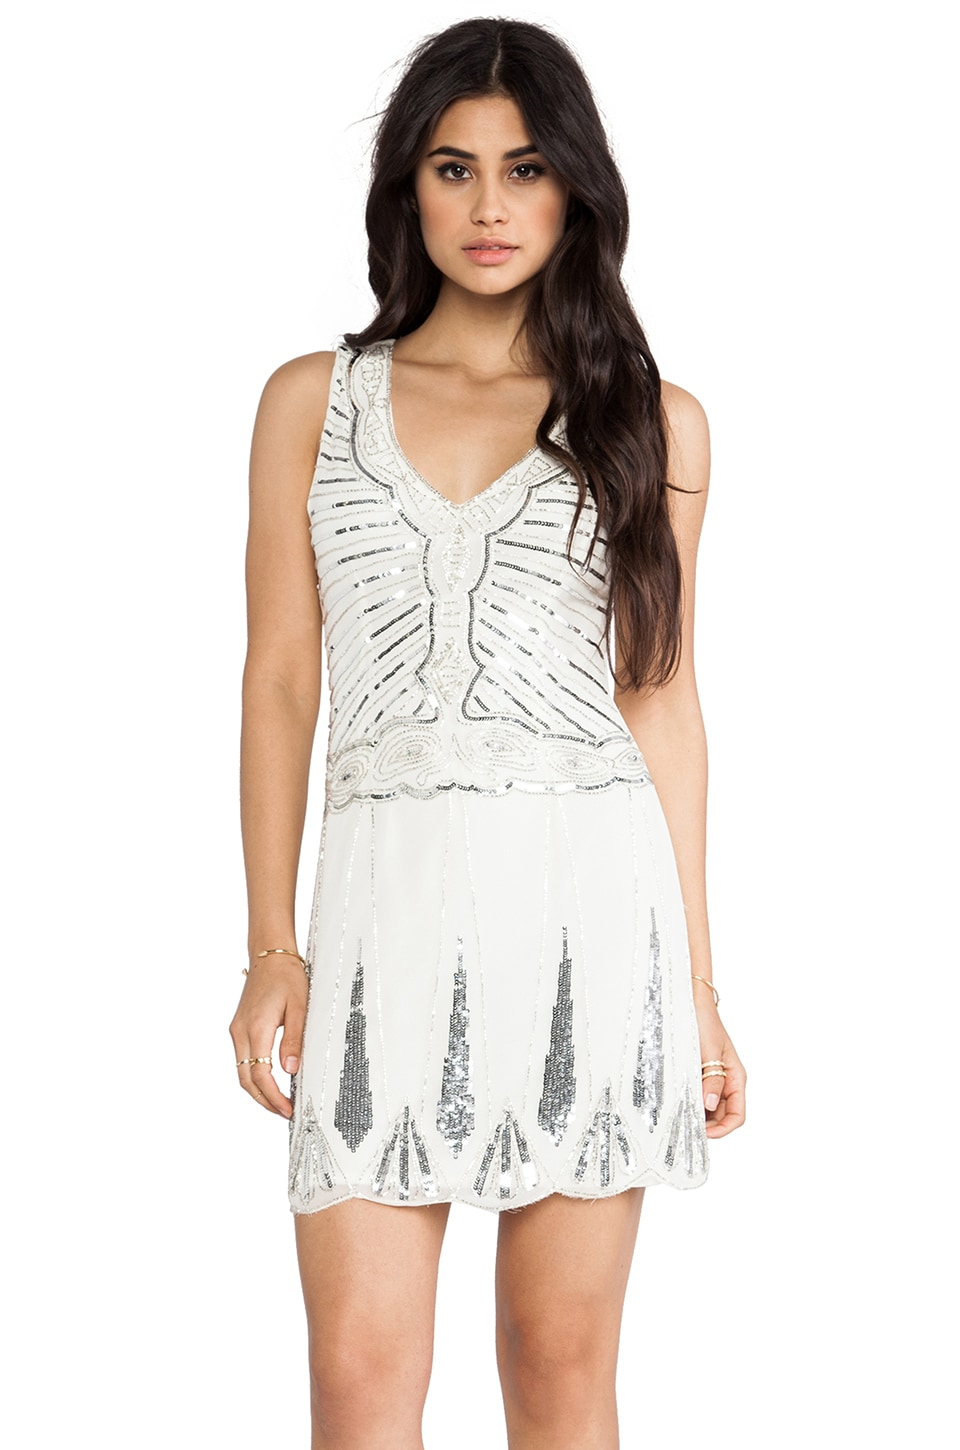 TFNC London Stacey Embellished Mini in White & Silver